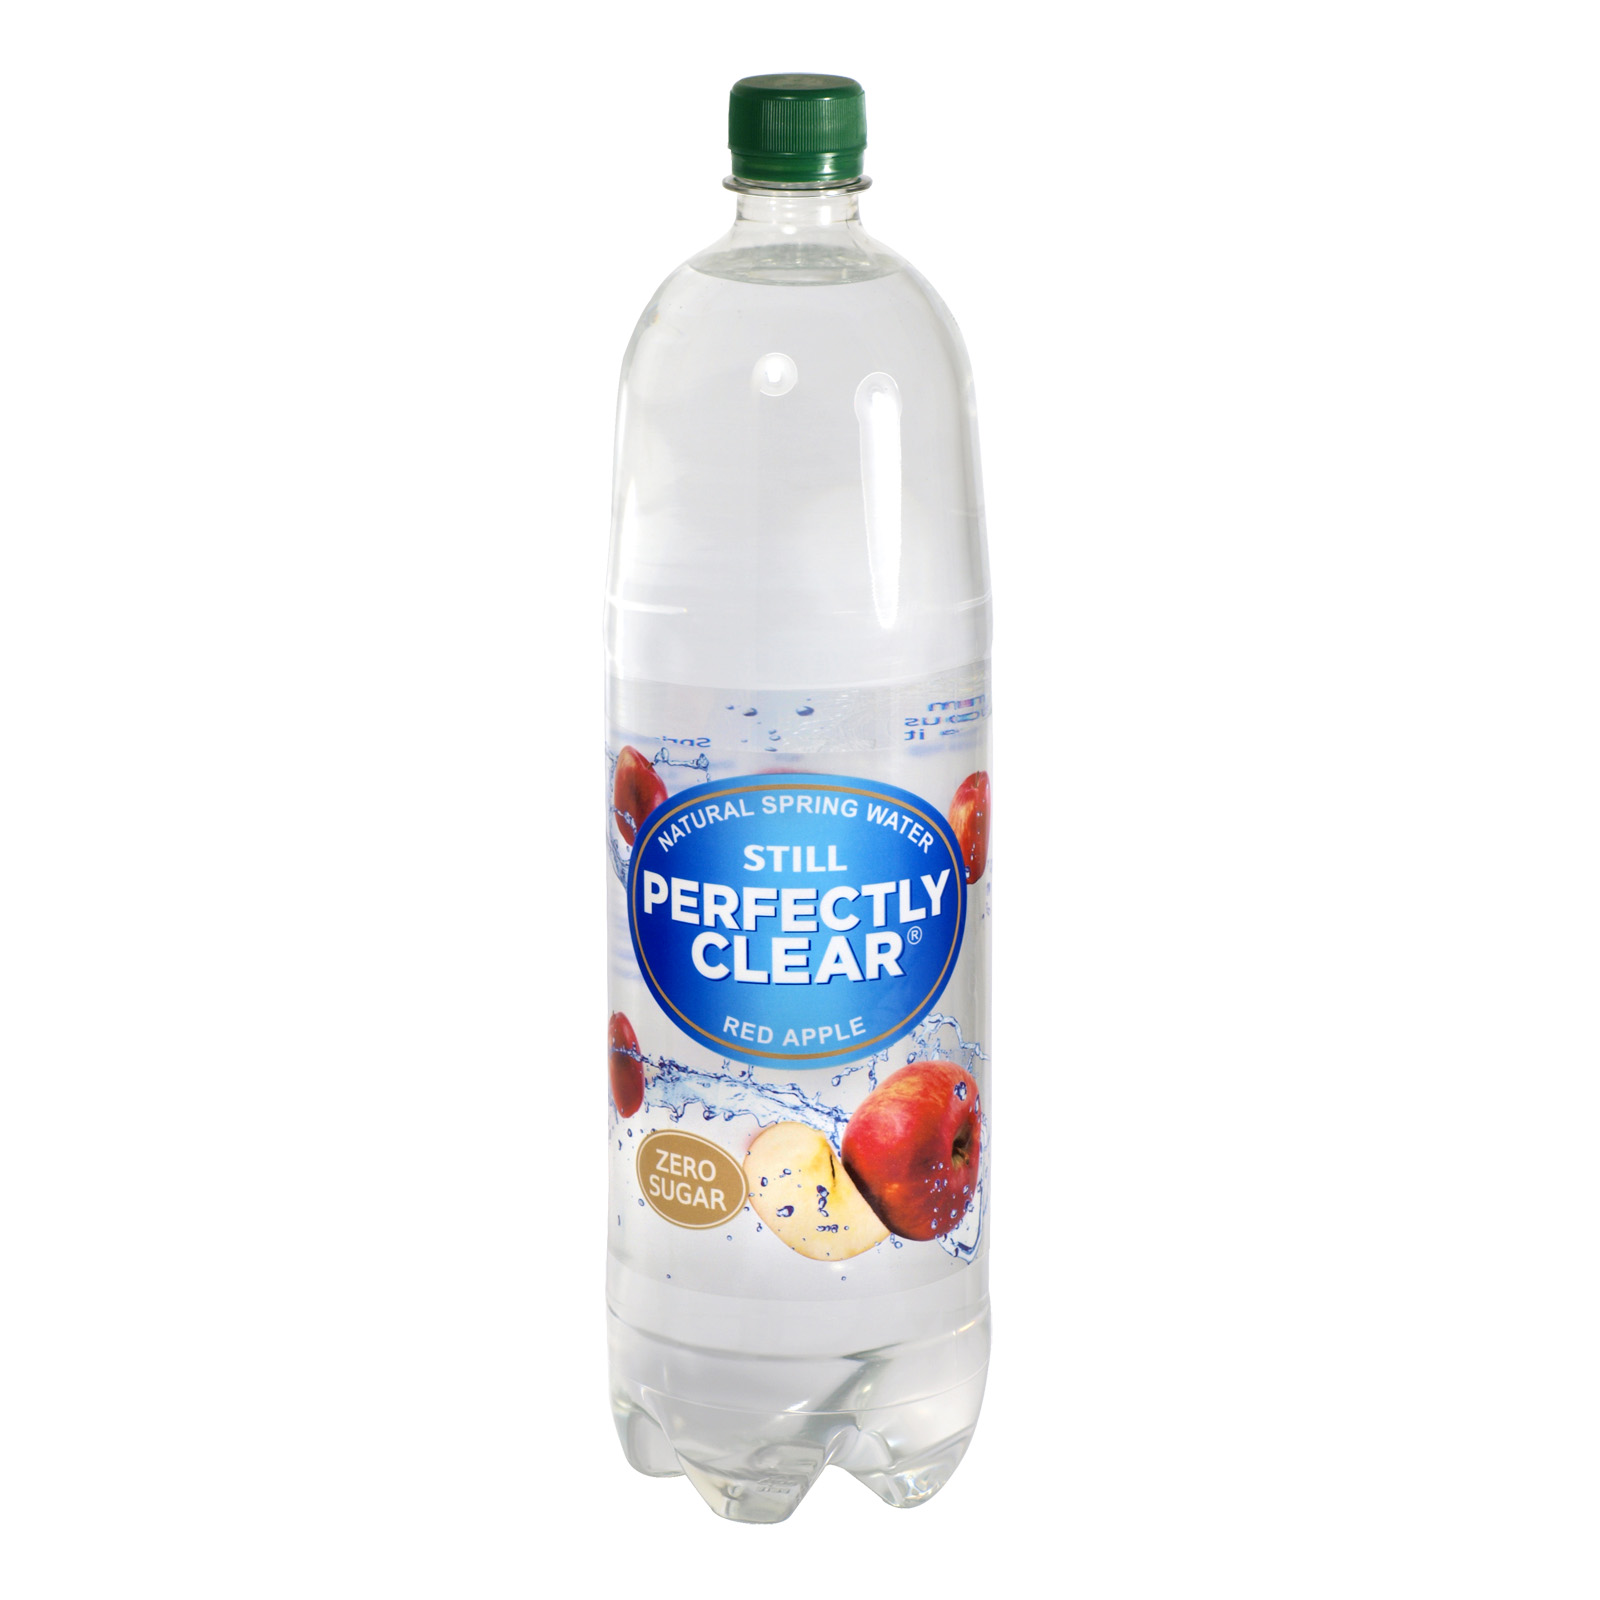 PERFECTLY CLEAR STILL 1.5L RED APPLE X8